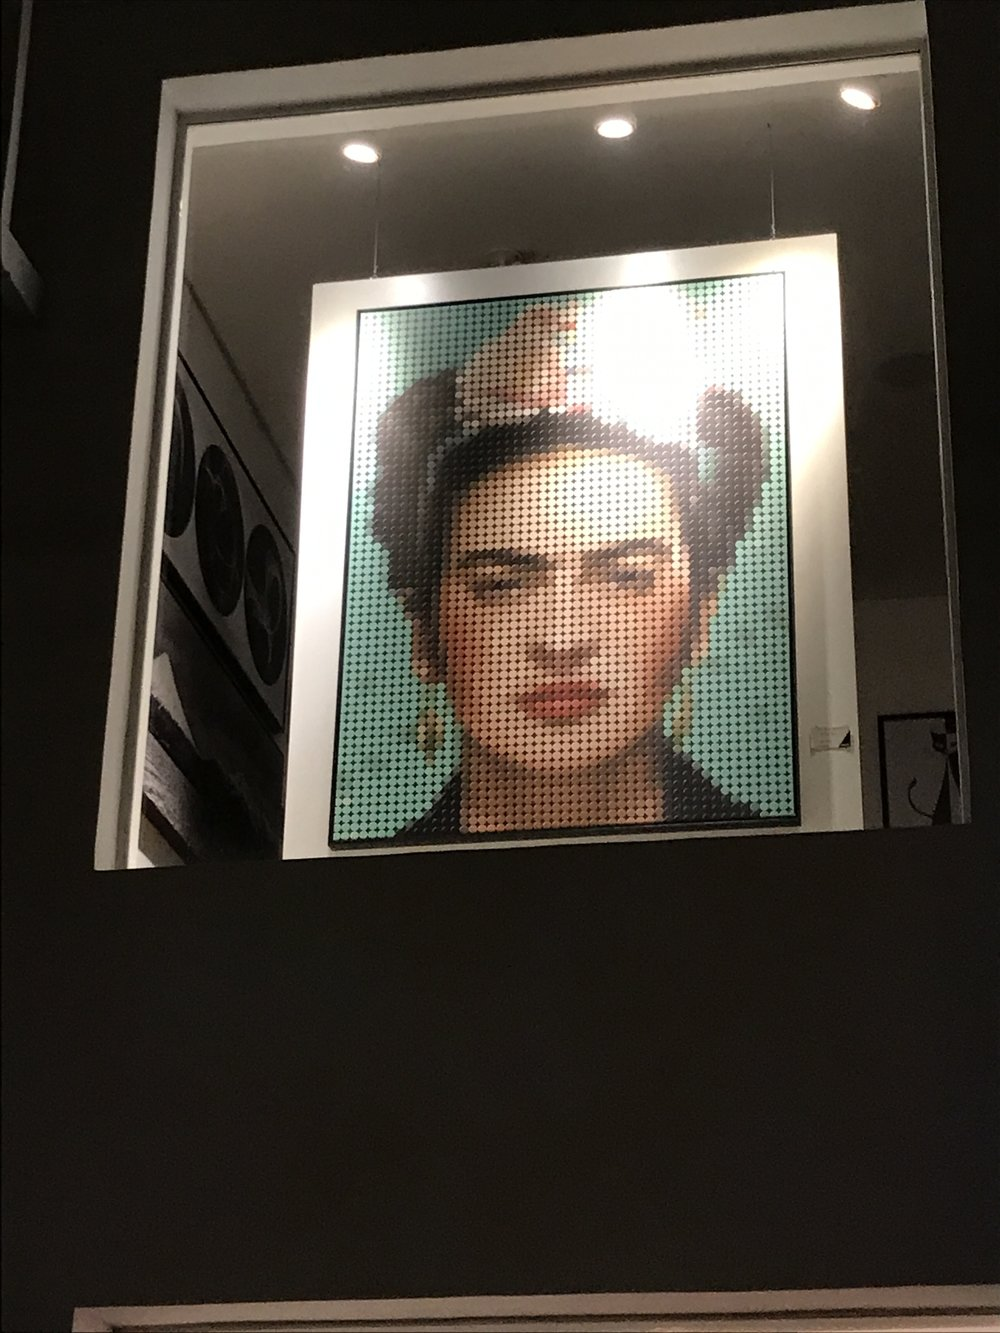 Frida collage, on the streets of São Paulo, Brazil